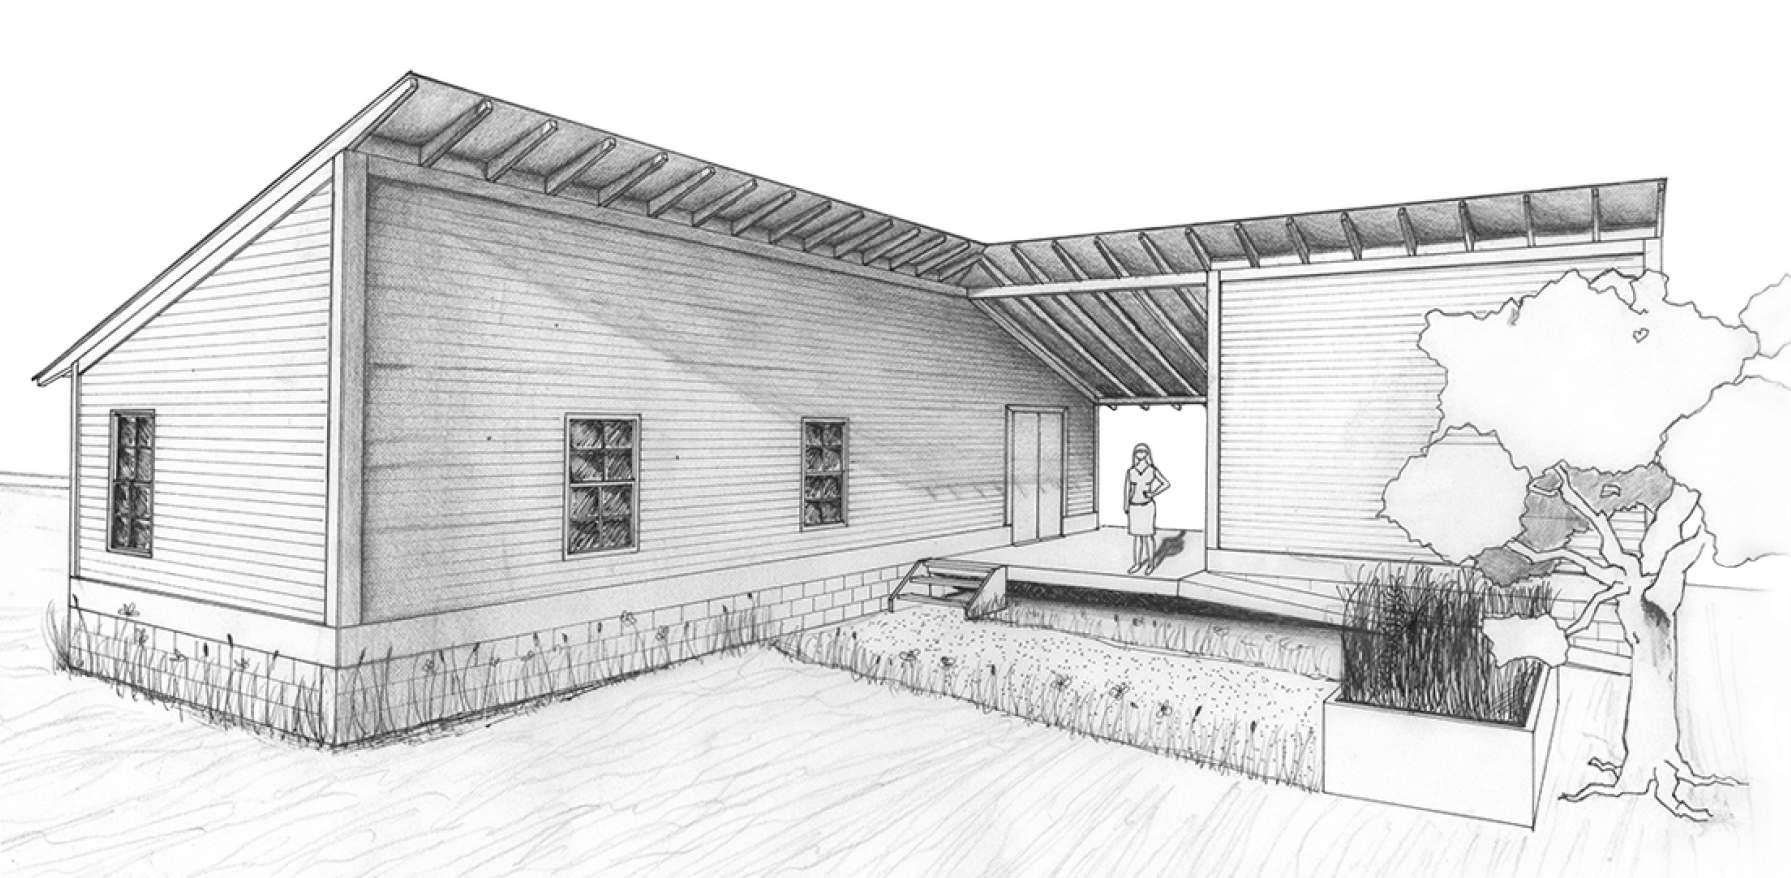 Exterior rendering of home in pencil